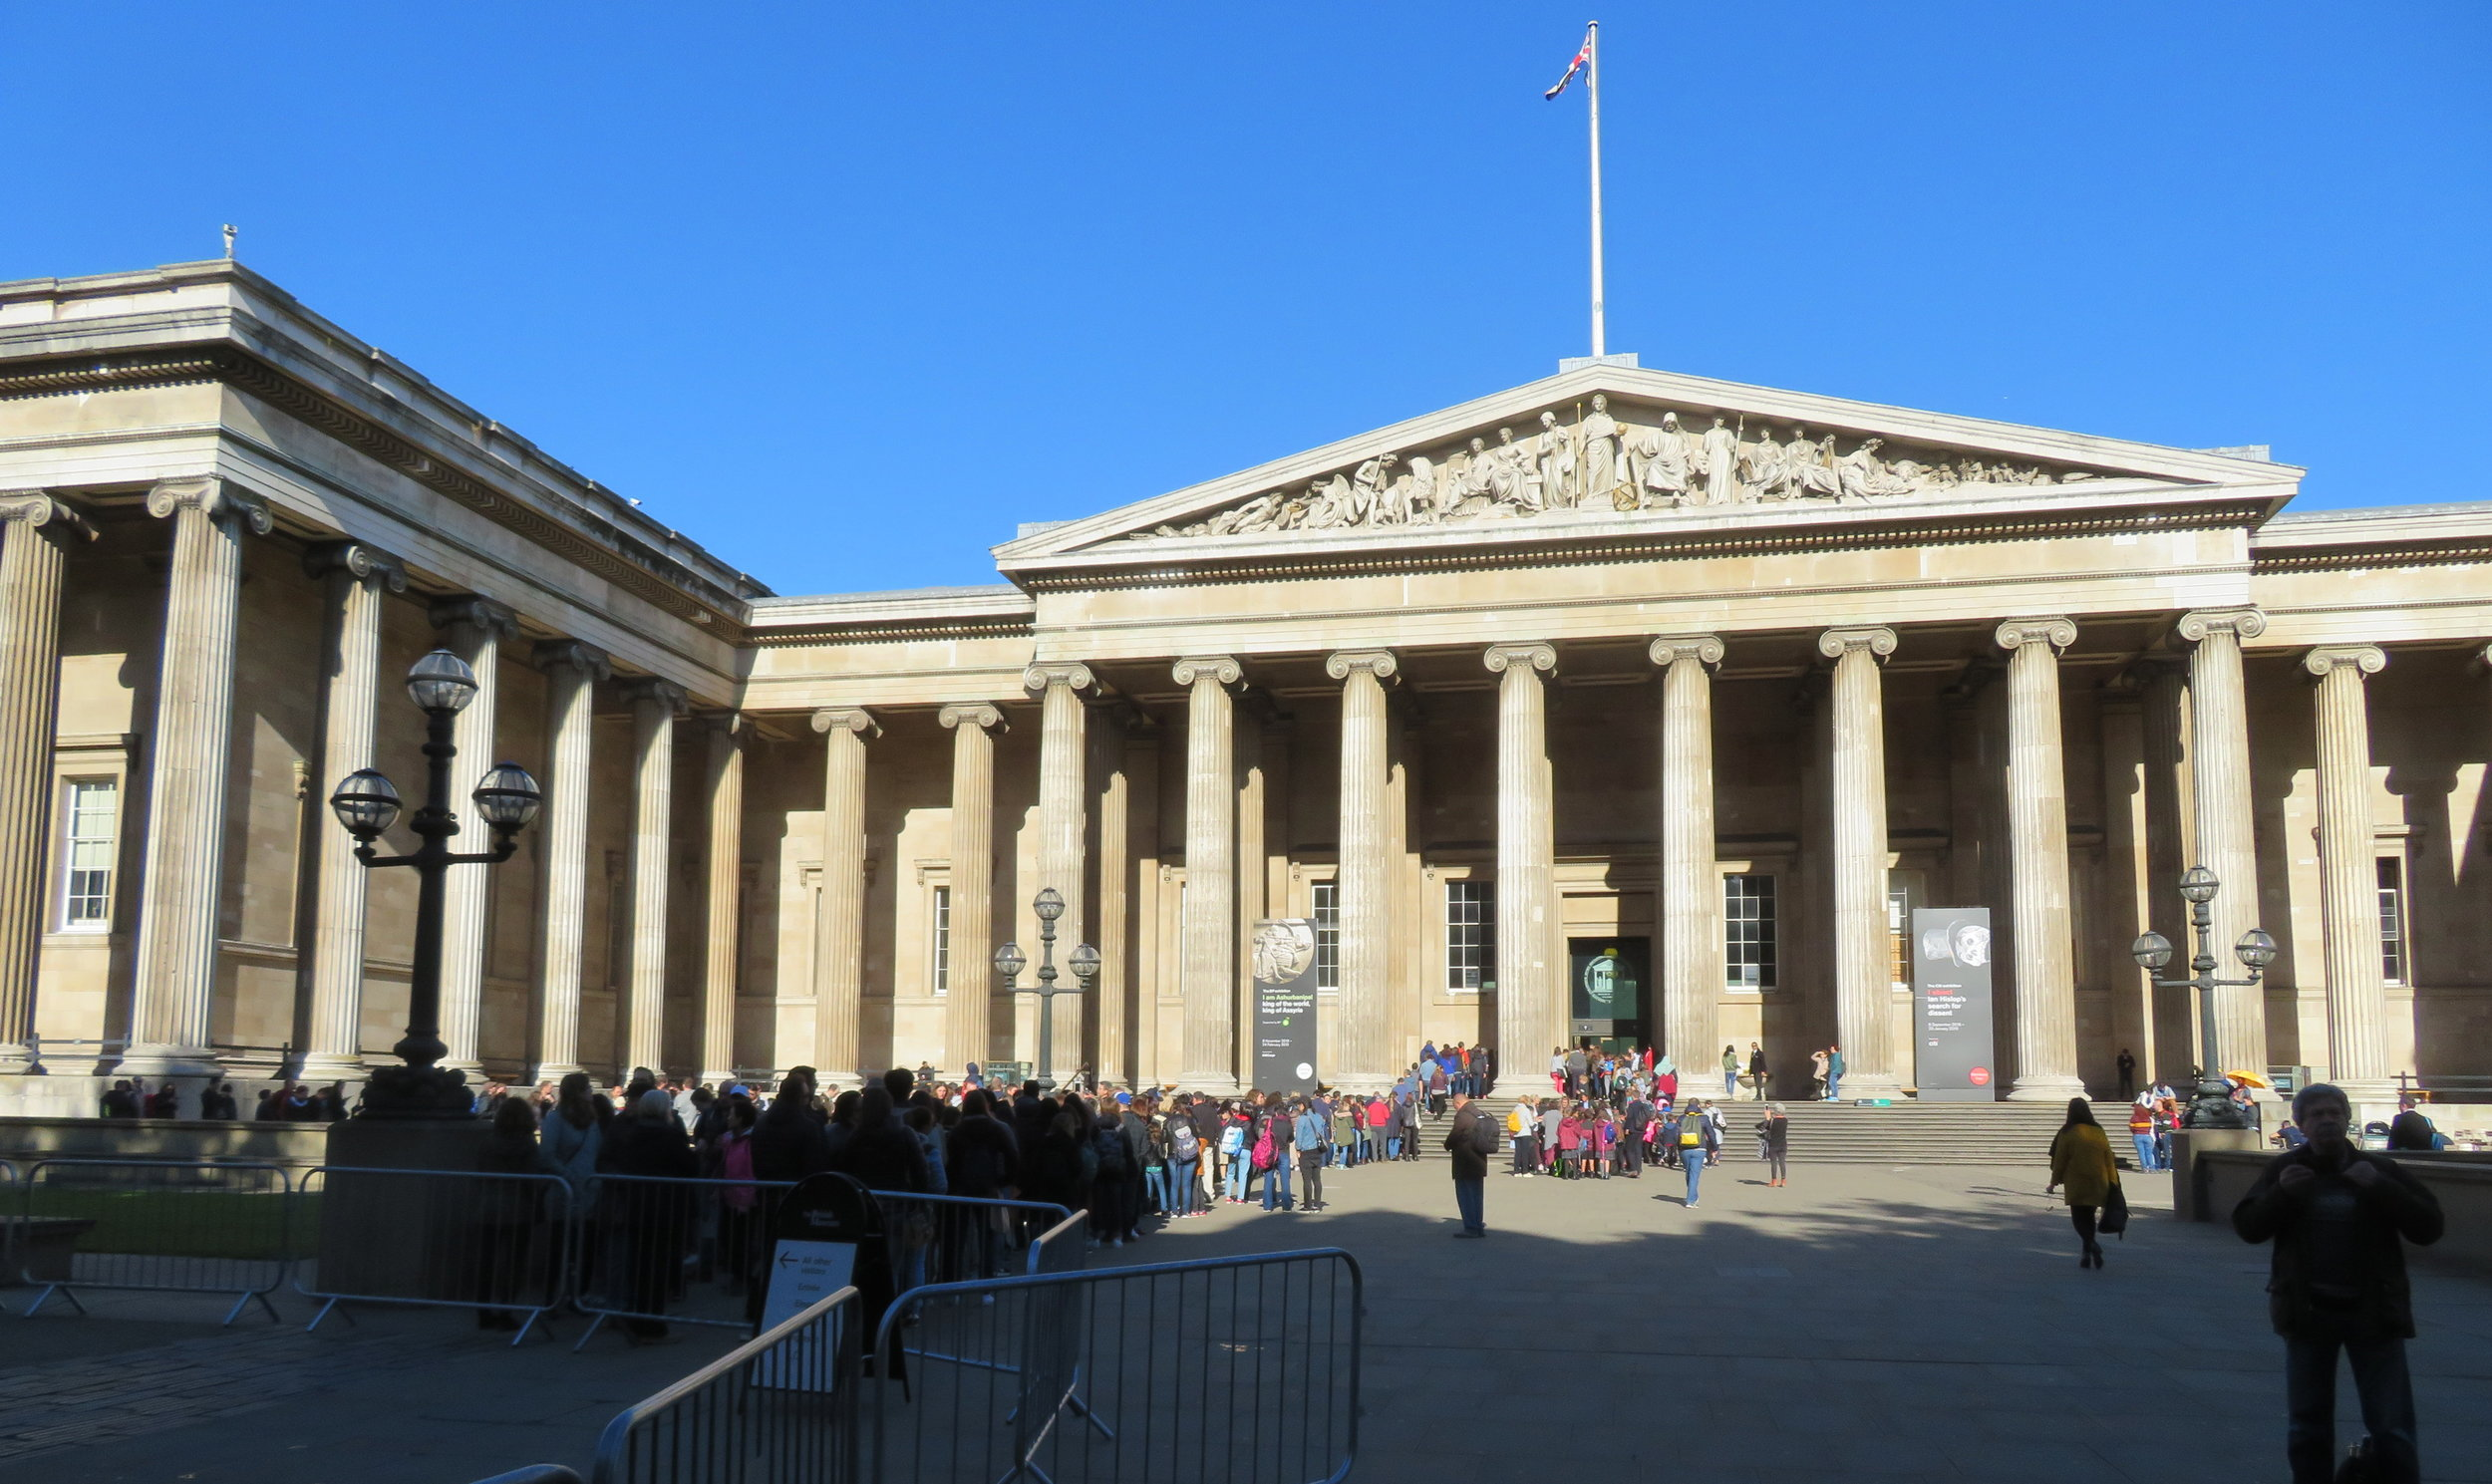 The British Museum … the line went all the way around the building.